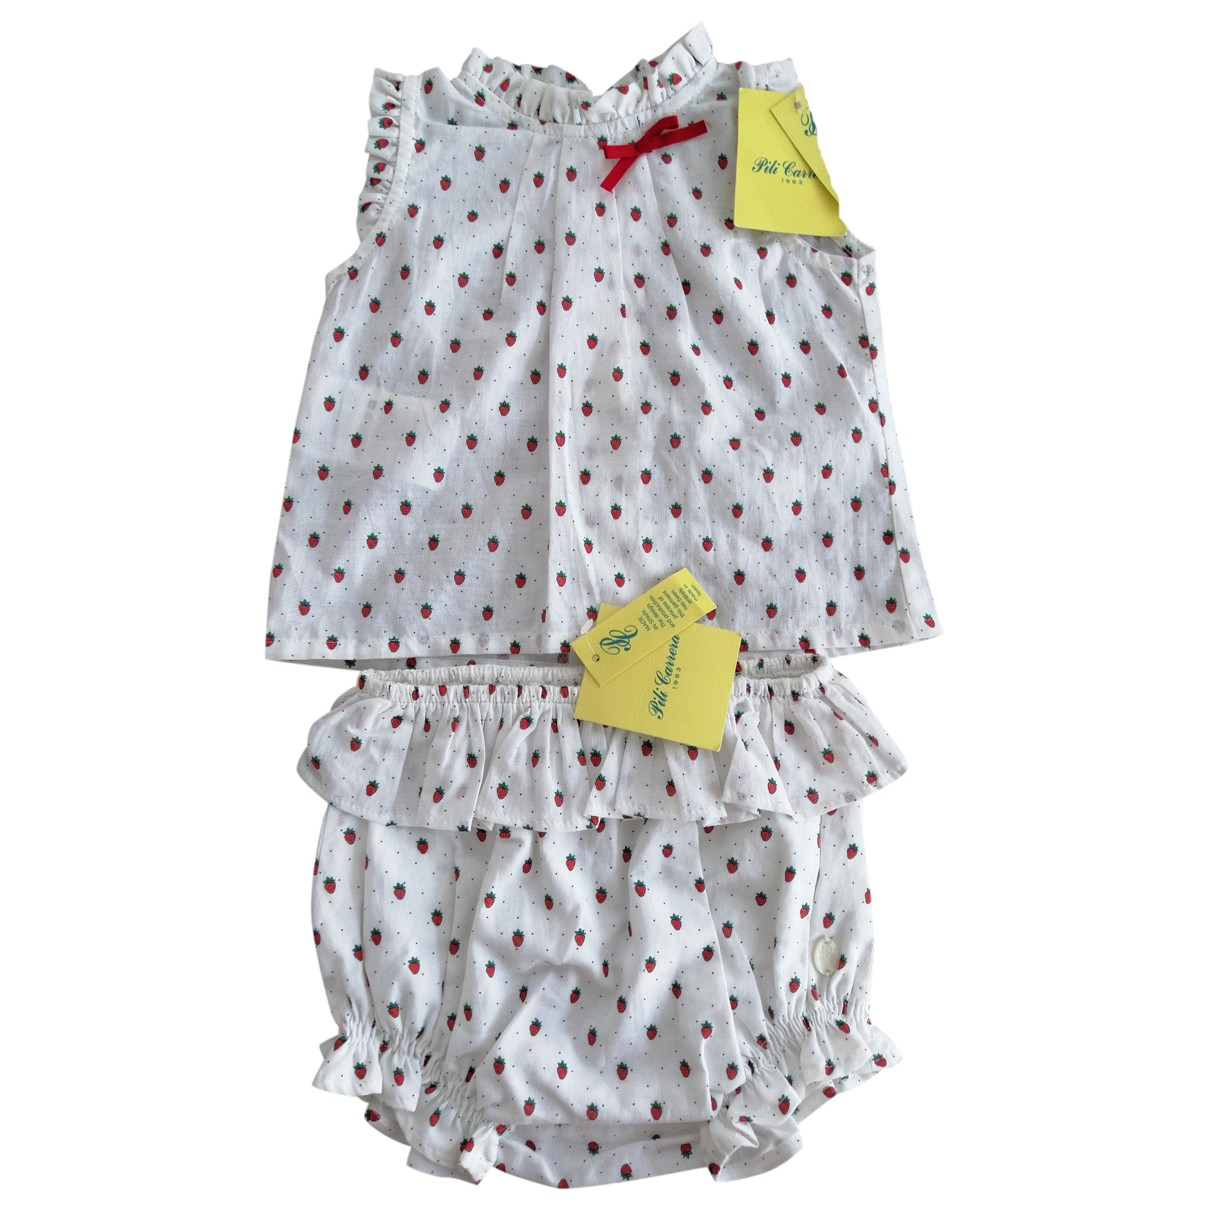 Pili Carrera \N White Cotton Outfits for Kids 6 months - up to 67cm FR